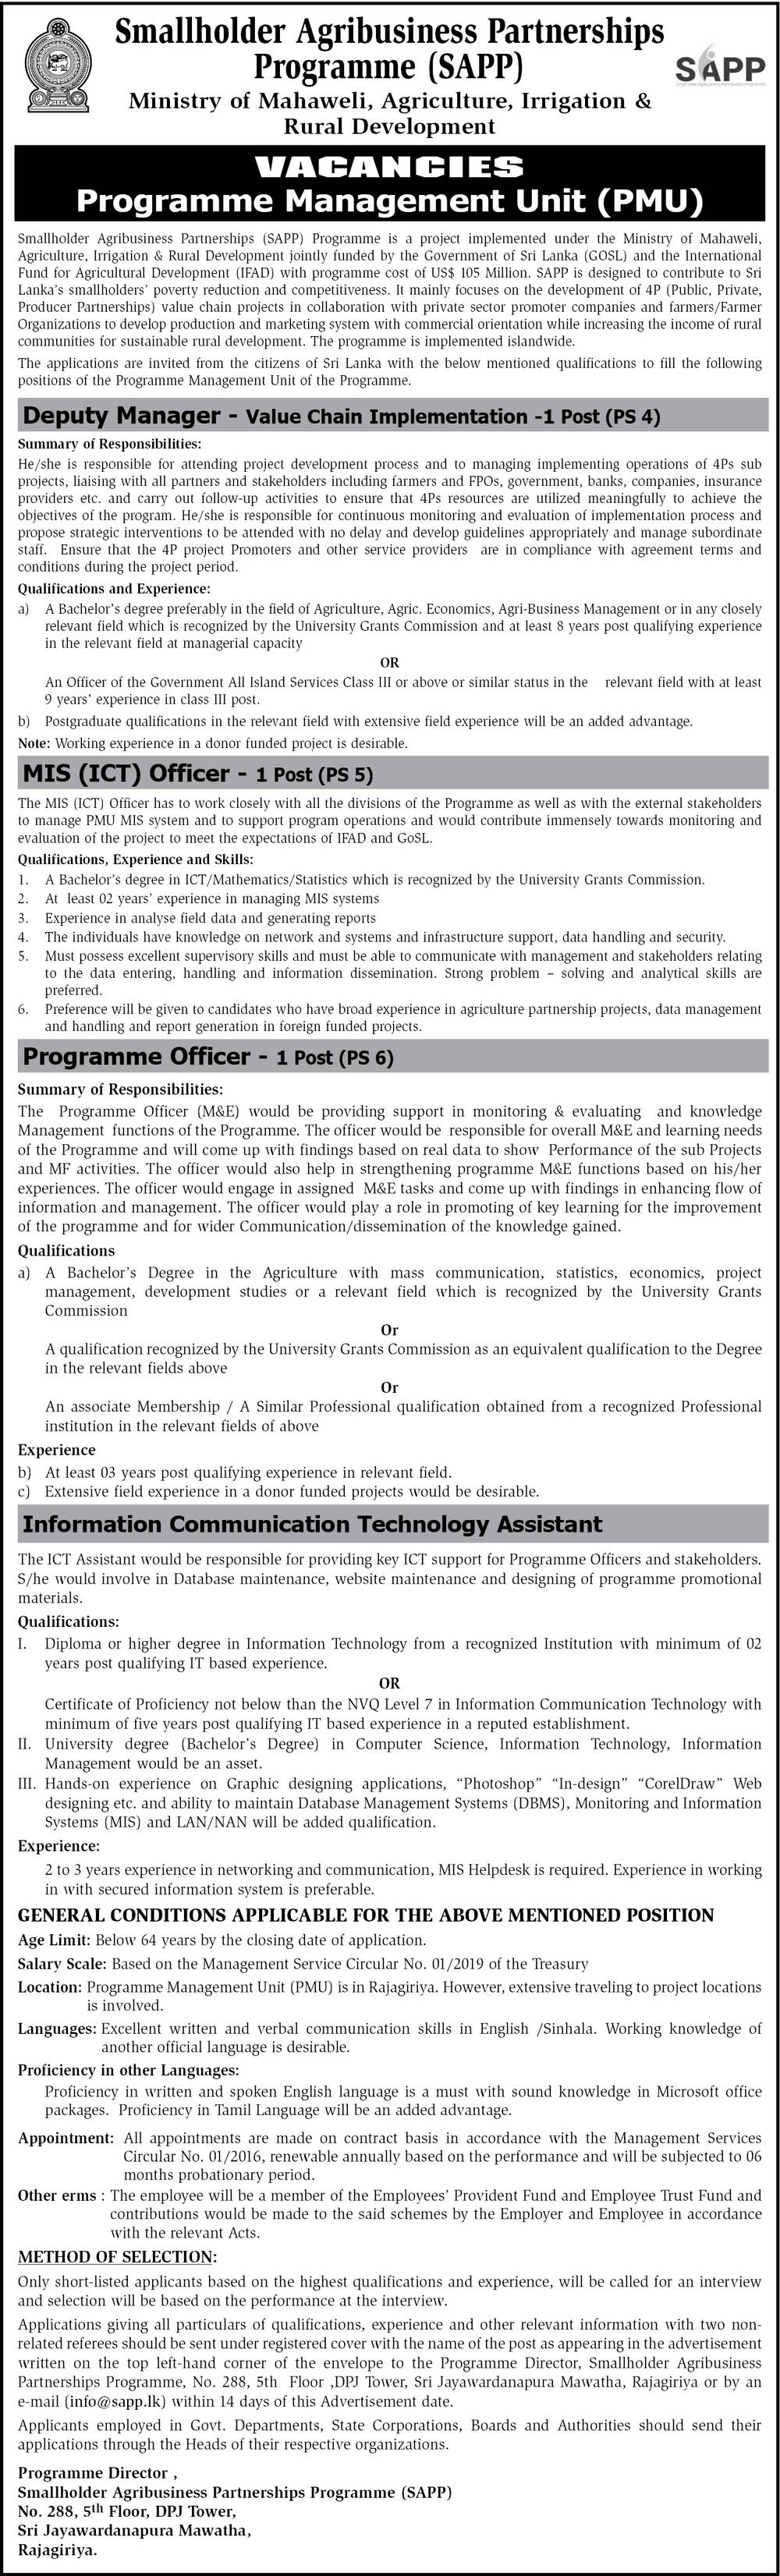 Information Communication Technology Assistant, Programme Officer, MIS (ICT) Officer, Deputy Manager - Ministry of Mahaweli, Agriculture, Irrigation & Rural Development